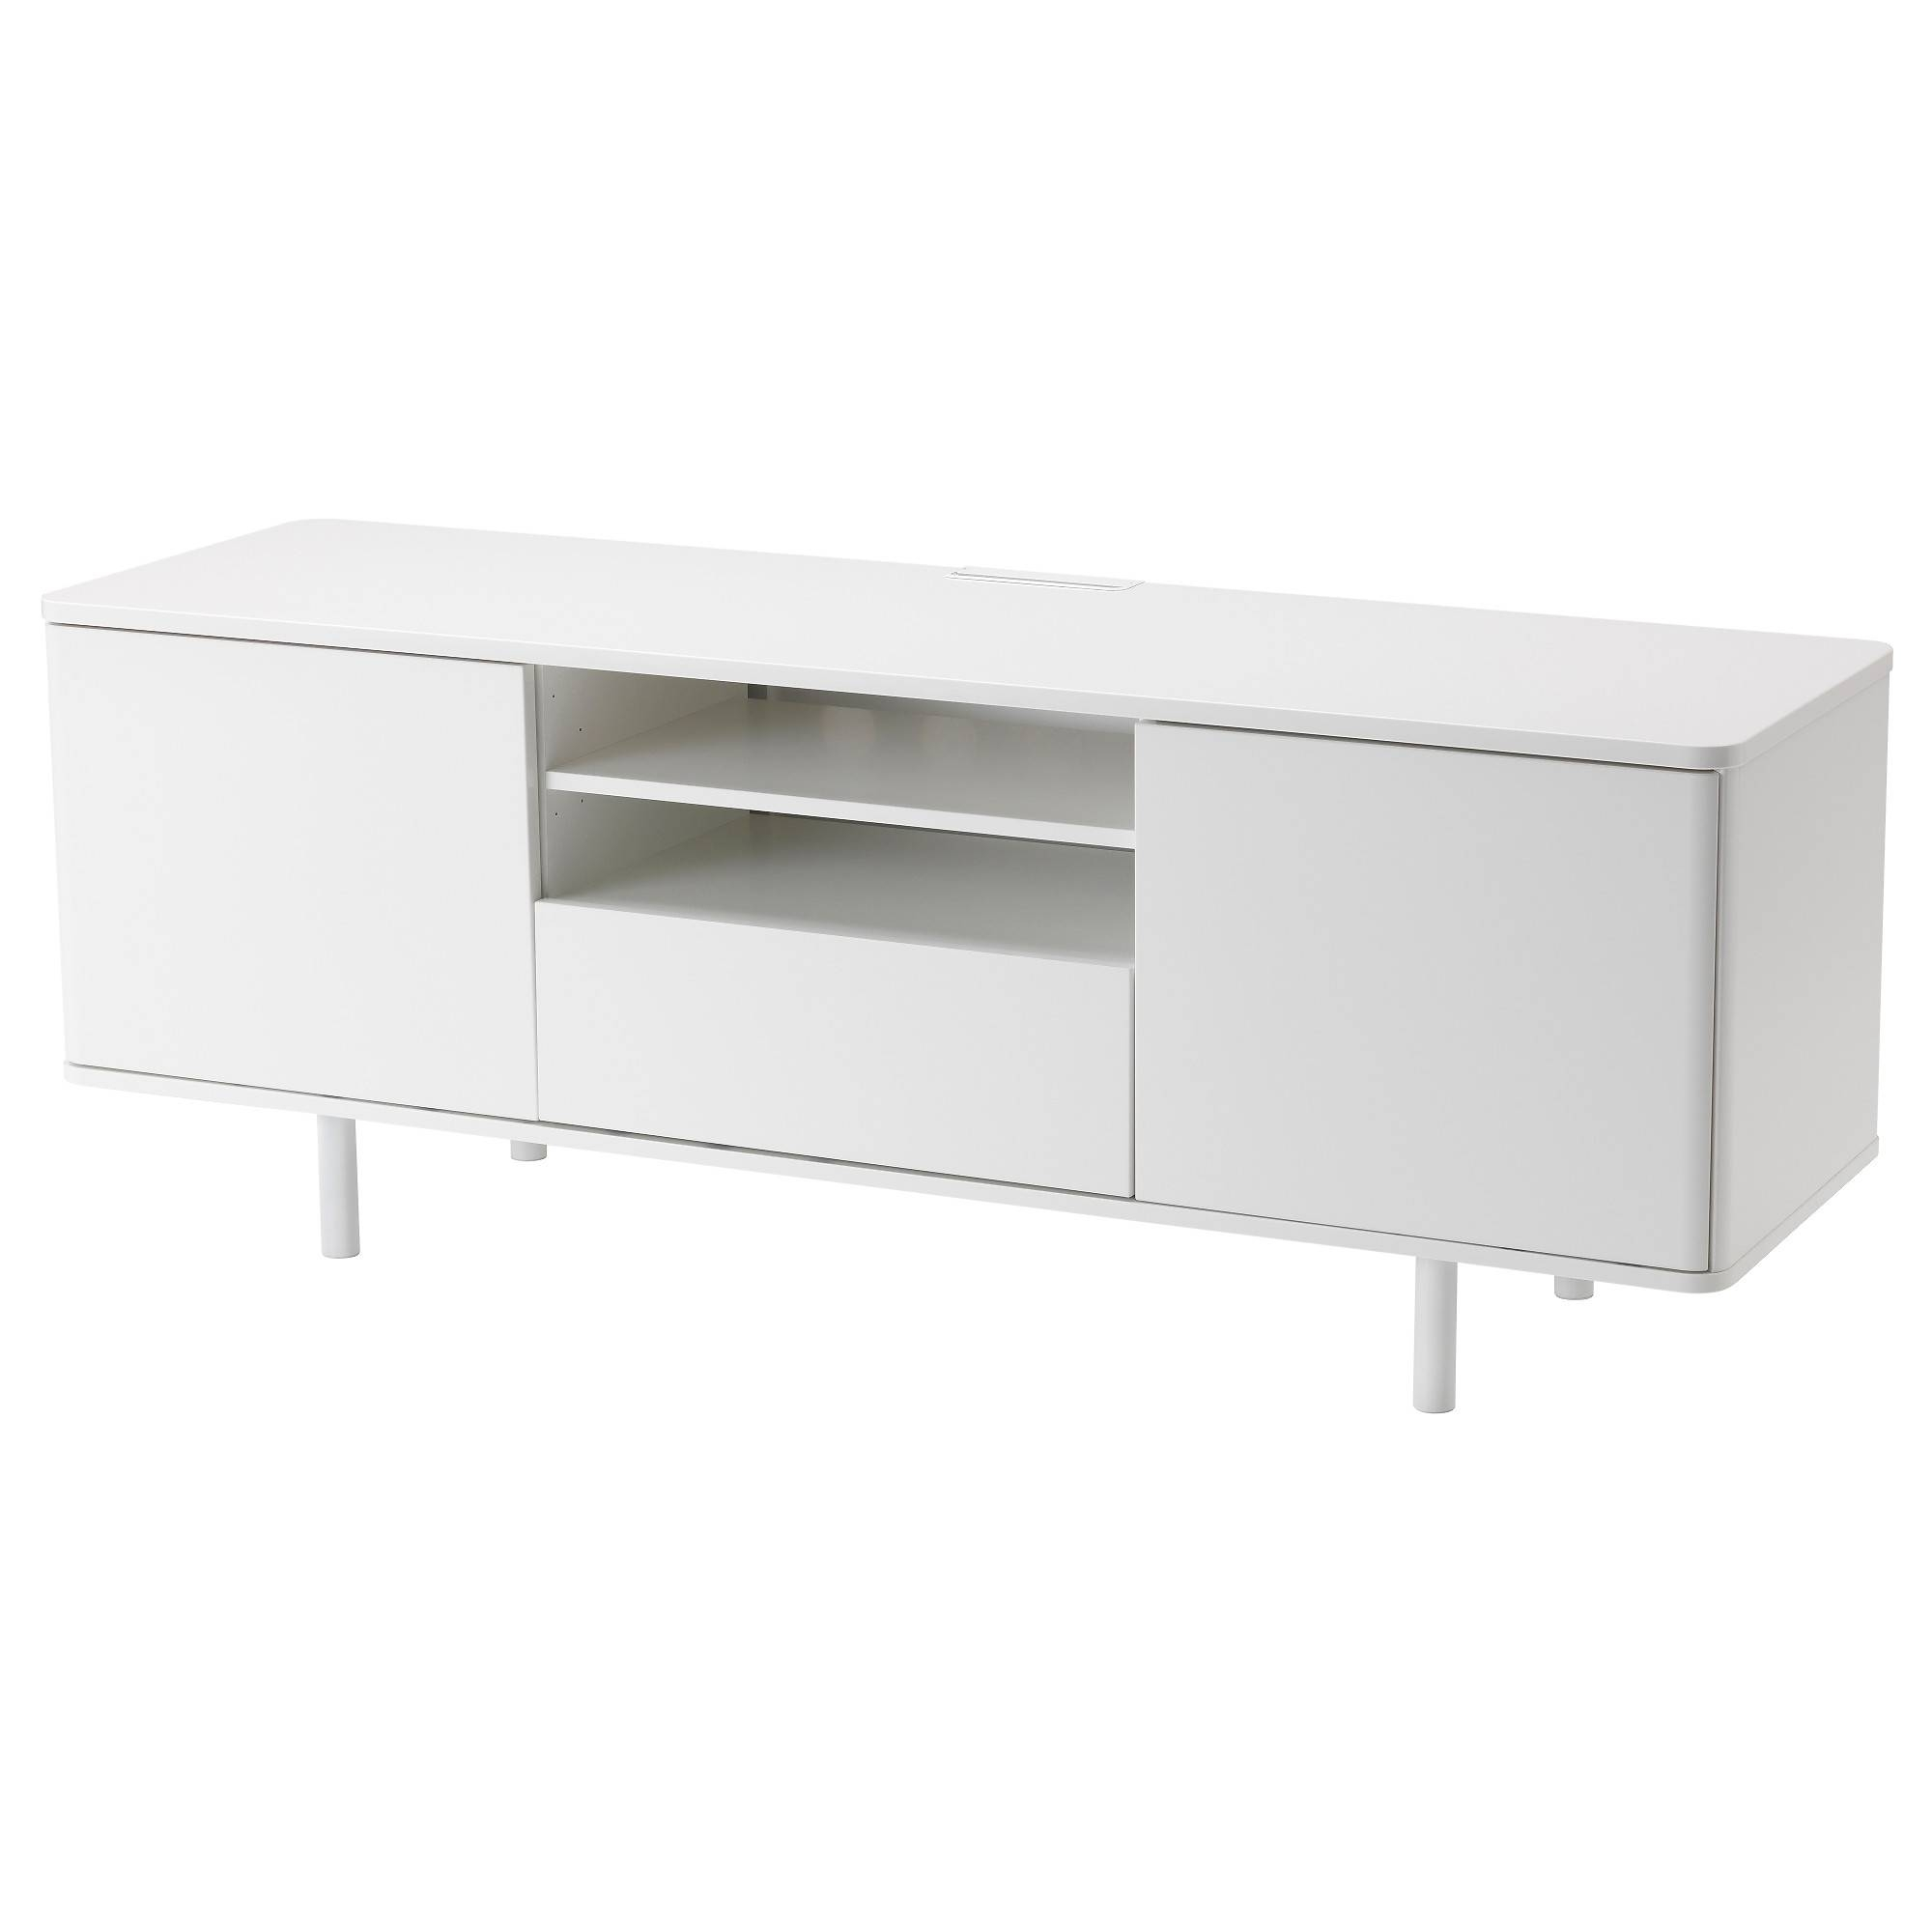 Tv Stands & Tv Units | Ikea with White High Gloss Corner Tv Unit (Image 11 of 15)